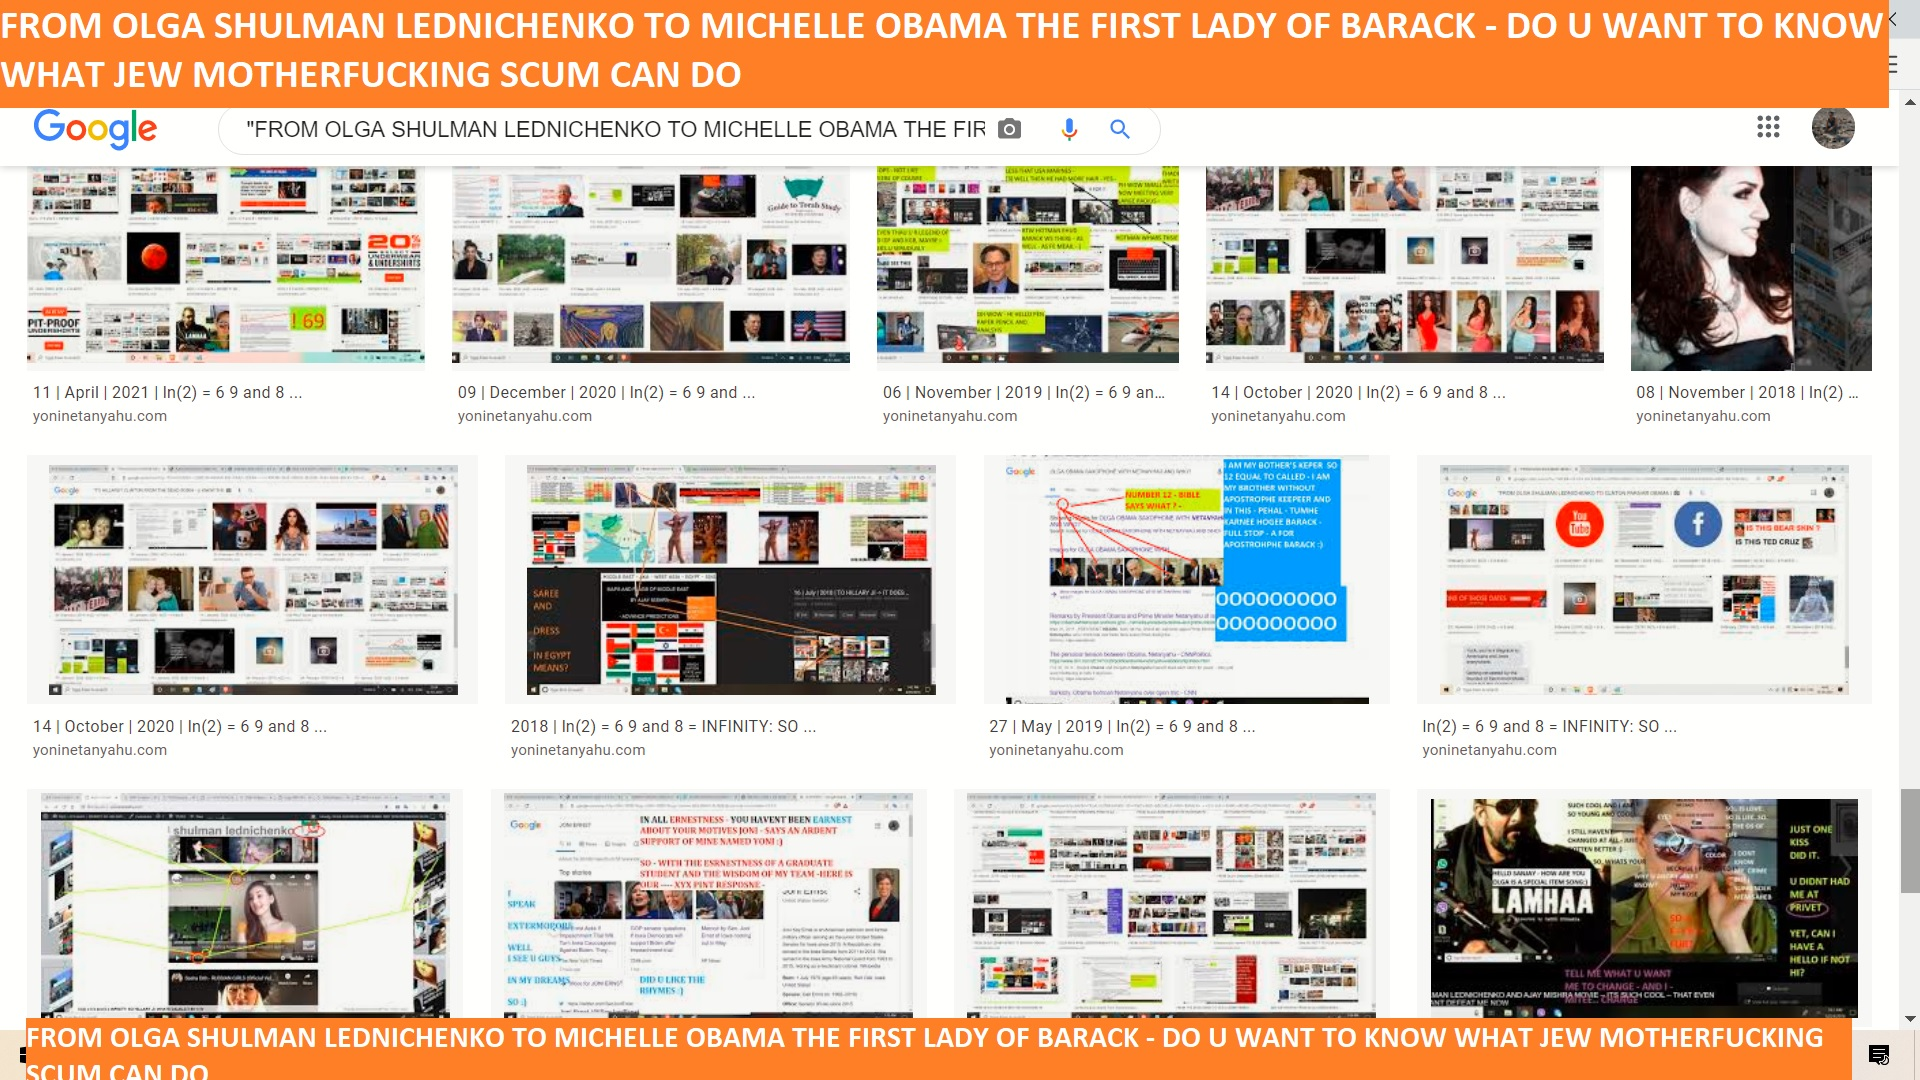 FROM OLGA SHULMAN LEDNICHENKO TO MICHELLE OBAMA THE FIRST LADY OF BARACK - DO U WANT TO KNOW WHAT JEW MOTHERFUCKING SCUM CAN DO ----=========